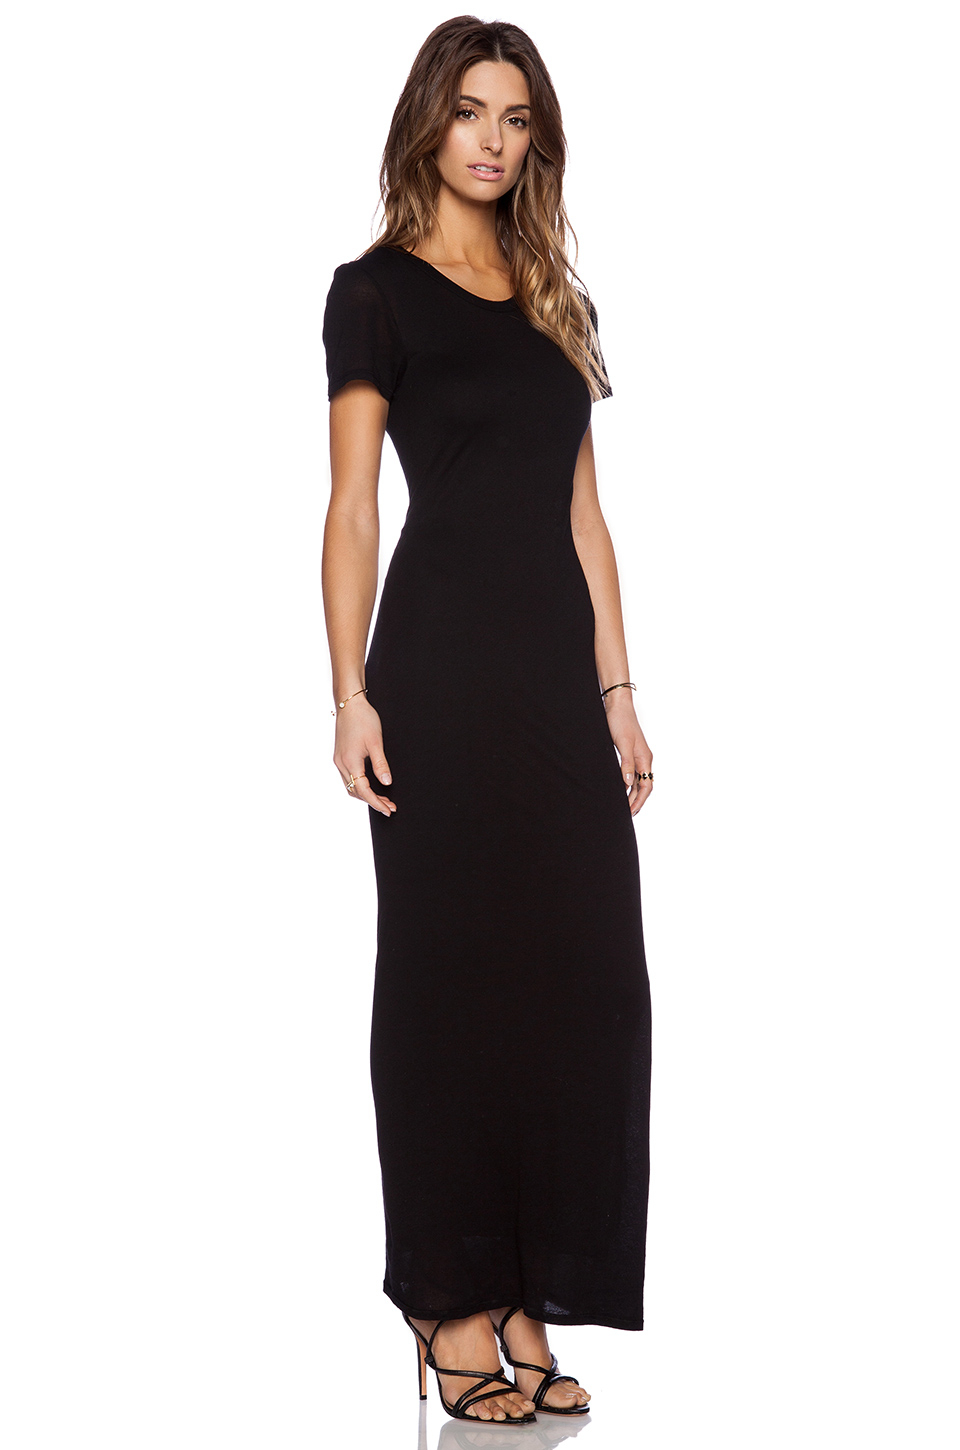 Black dress maxi short sleeve – Woman best dresses